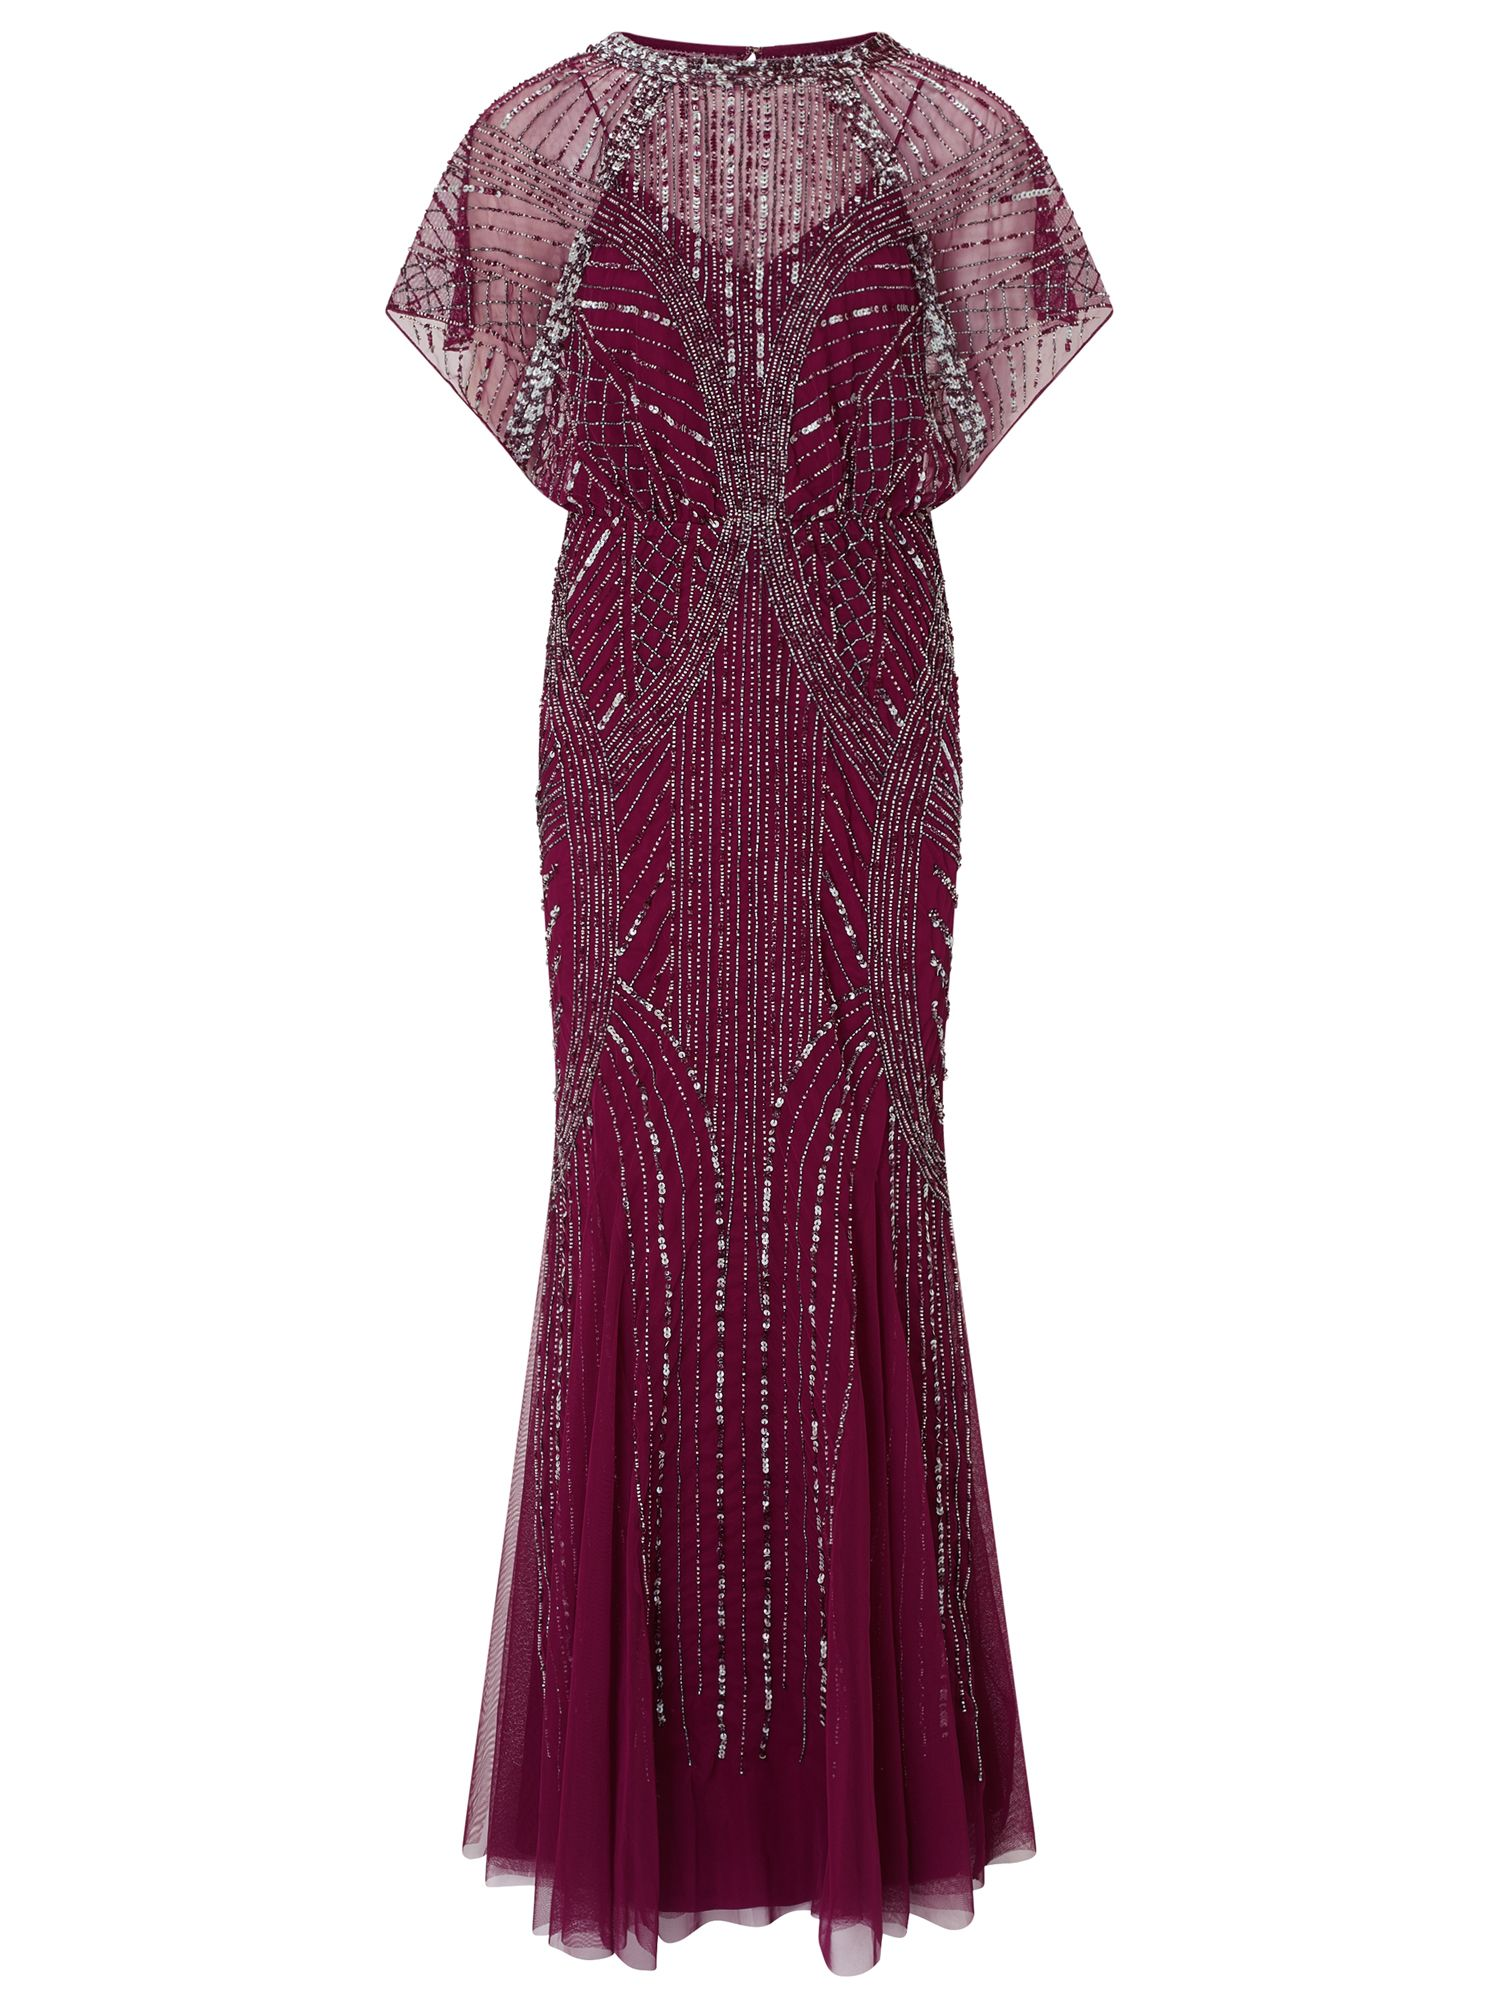 Ariella Couture Steffy Maxi Dress, Purple